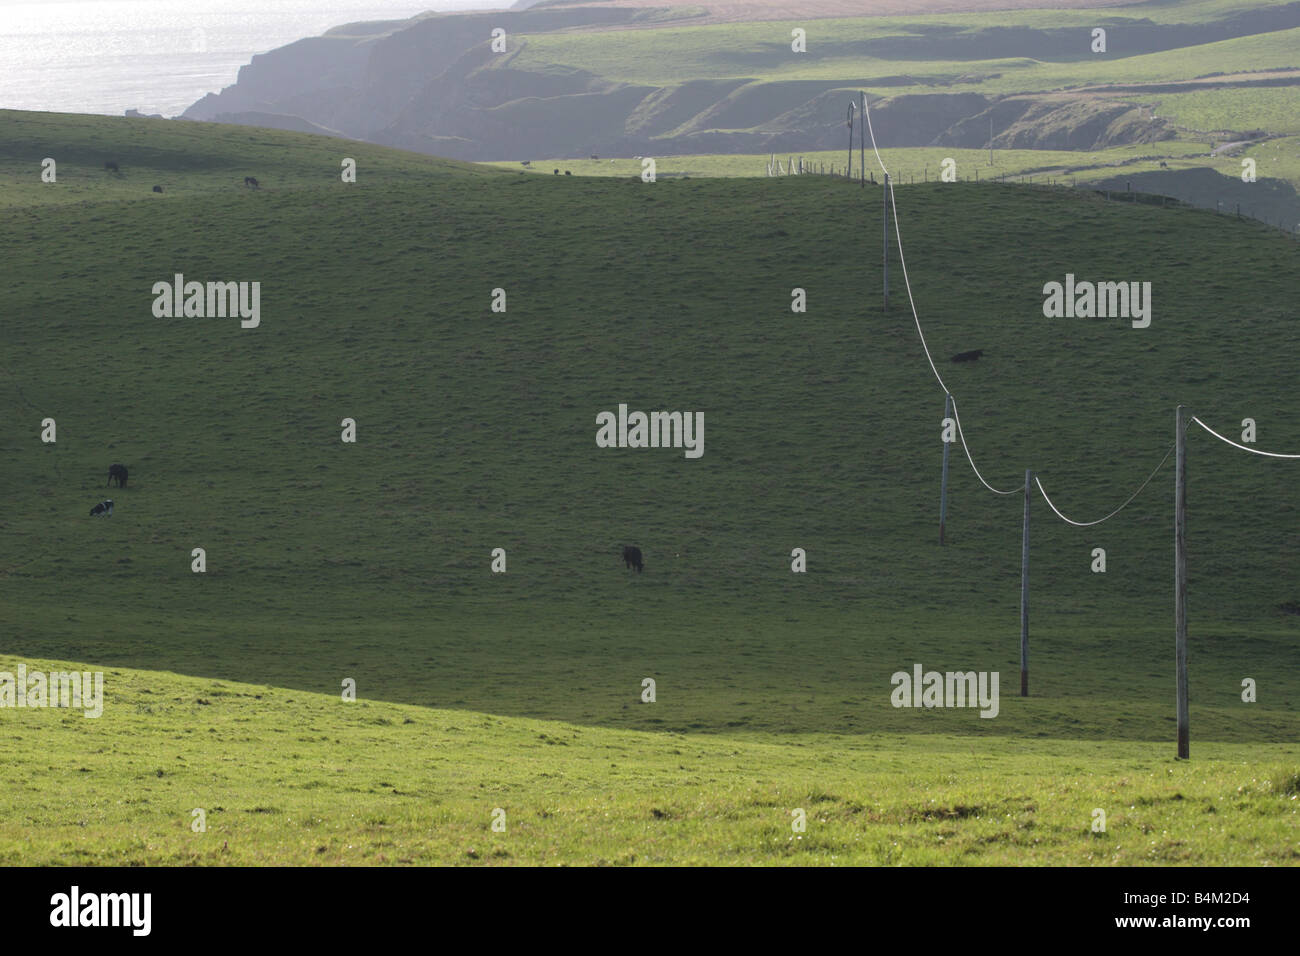 Sidelit power cable crossing pasture land in shadow at Mull of Galloway, Dumfries & Galloway. - Stock Image